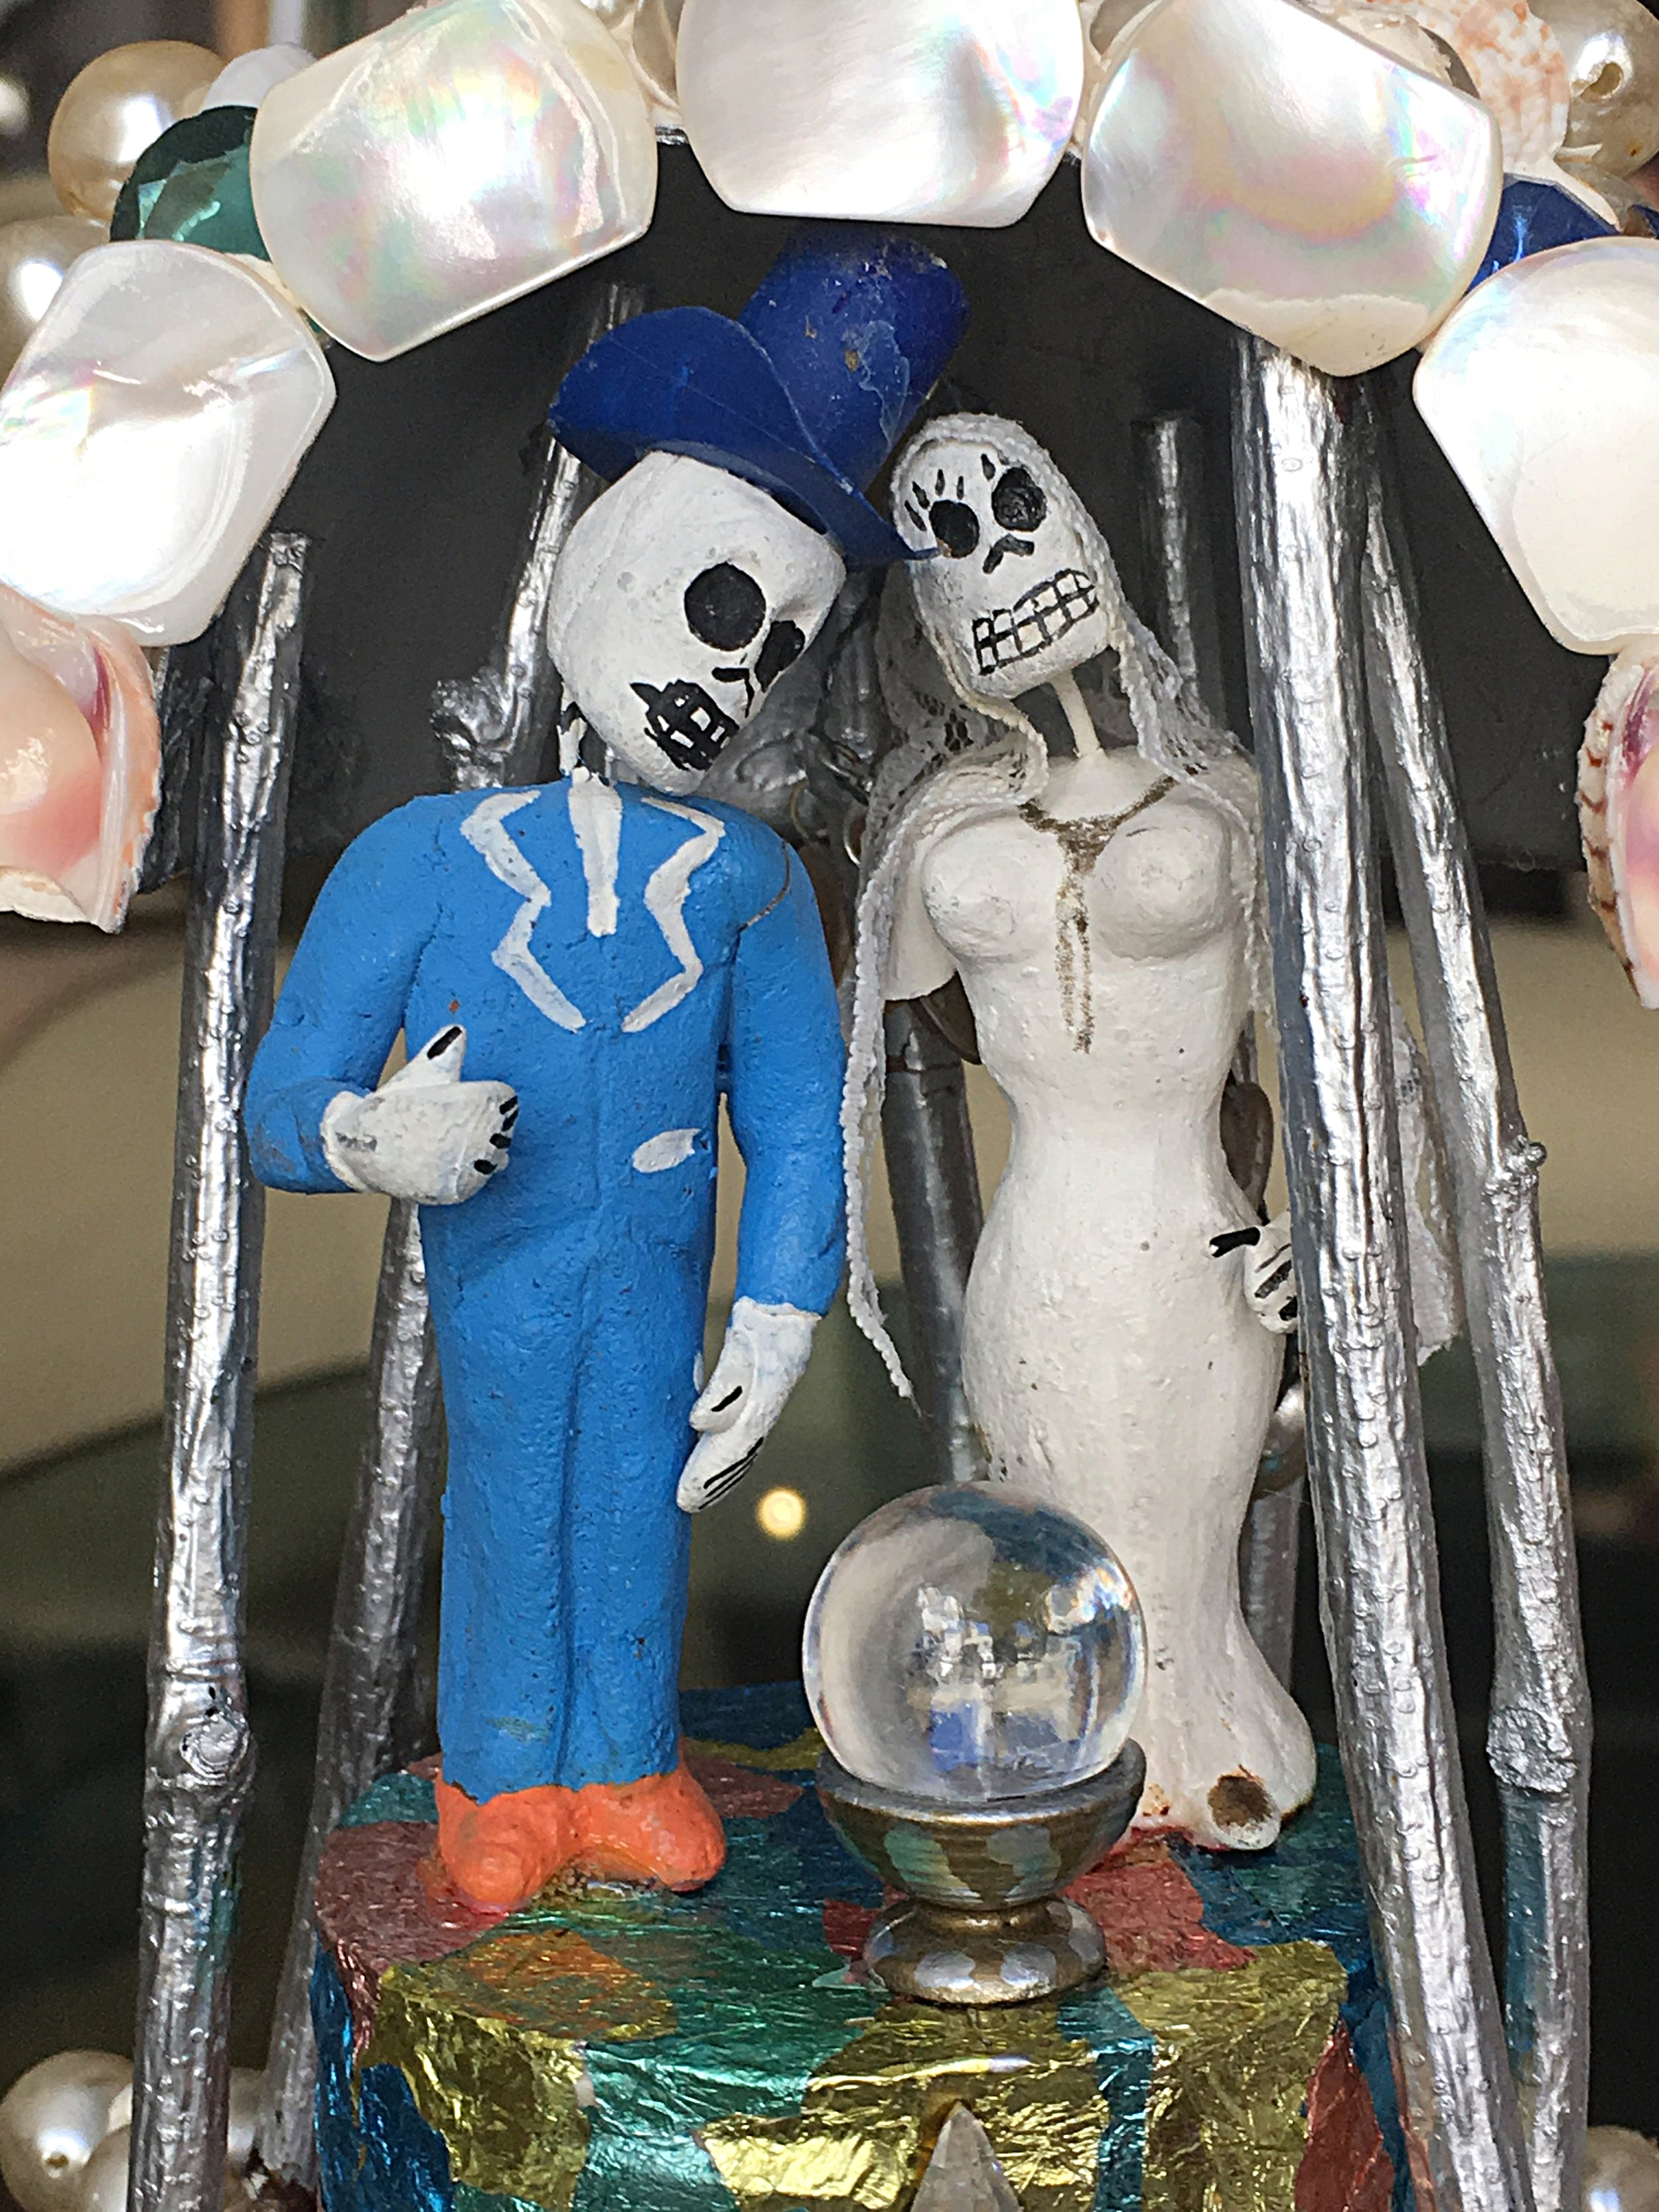 This was the cake topper on our wedding cake May 15, 1983.